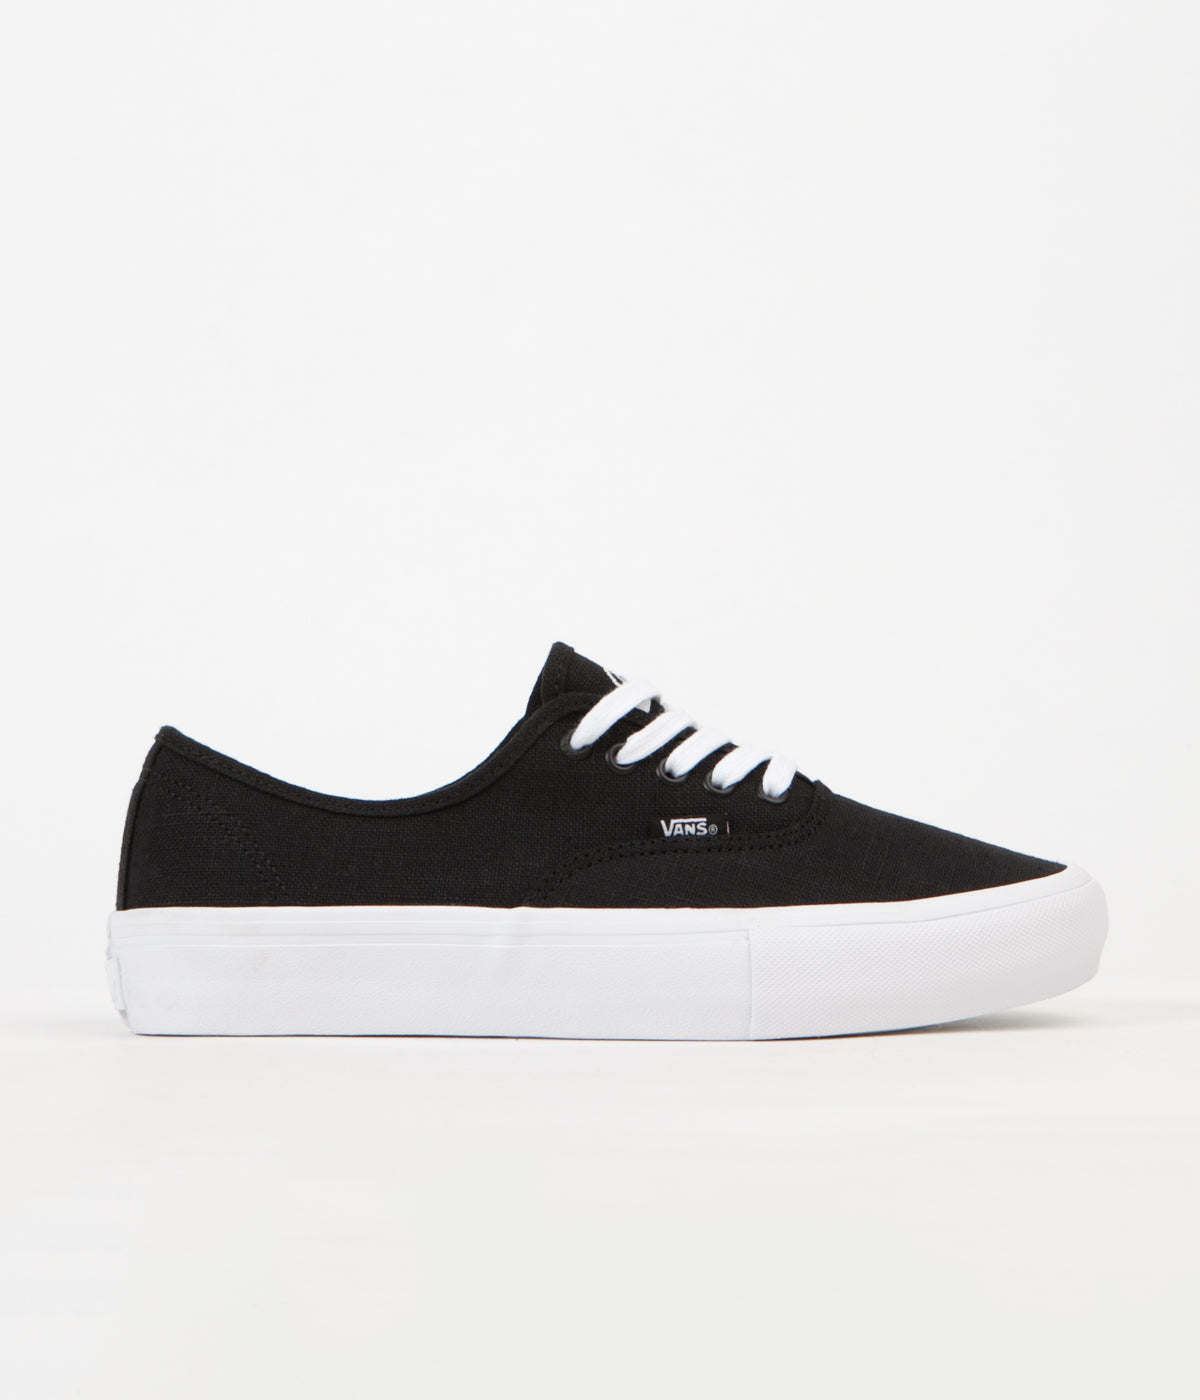 62a775c3b3 ... Vans x Civilist Authentic Pro Shoes - Black   True White ...